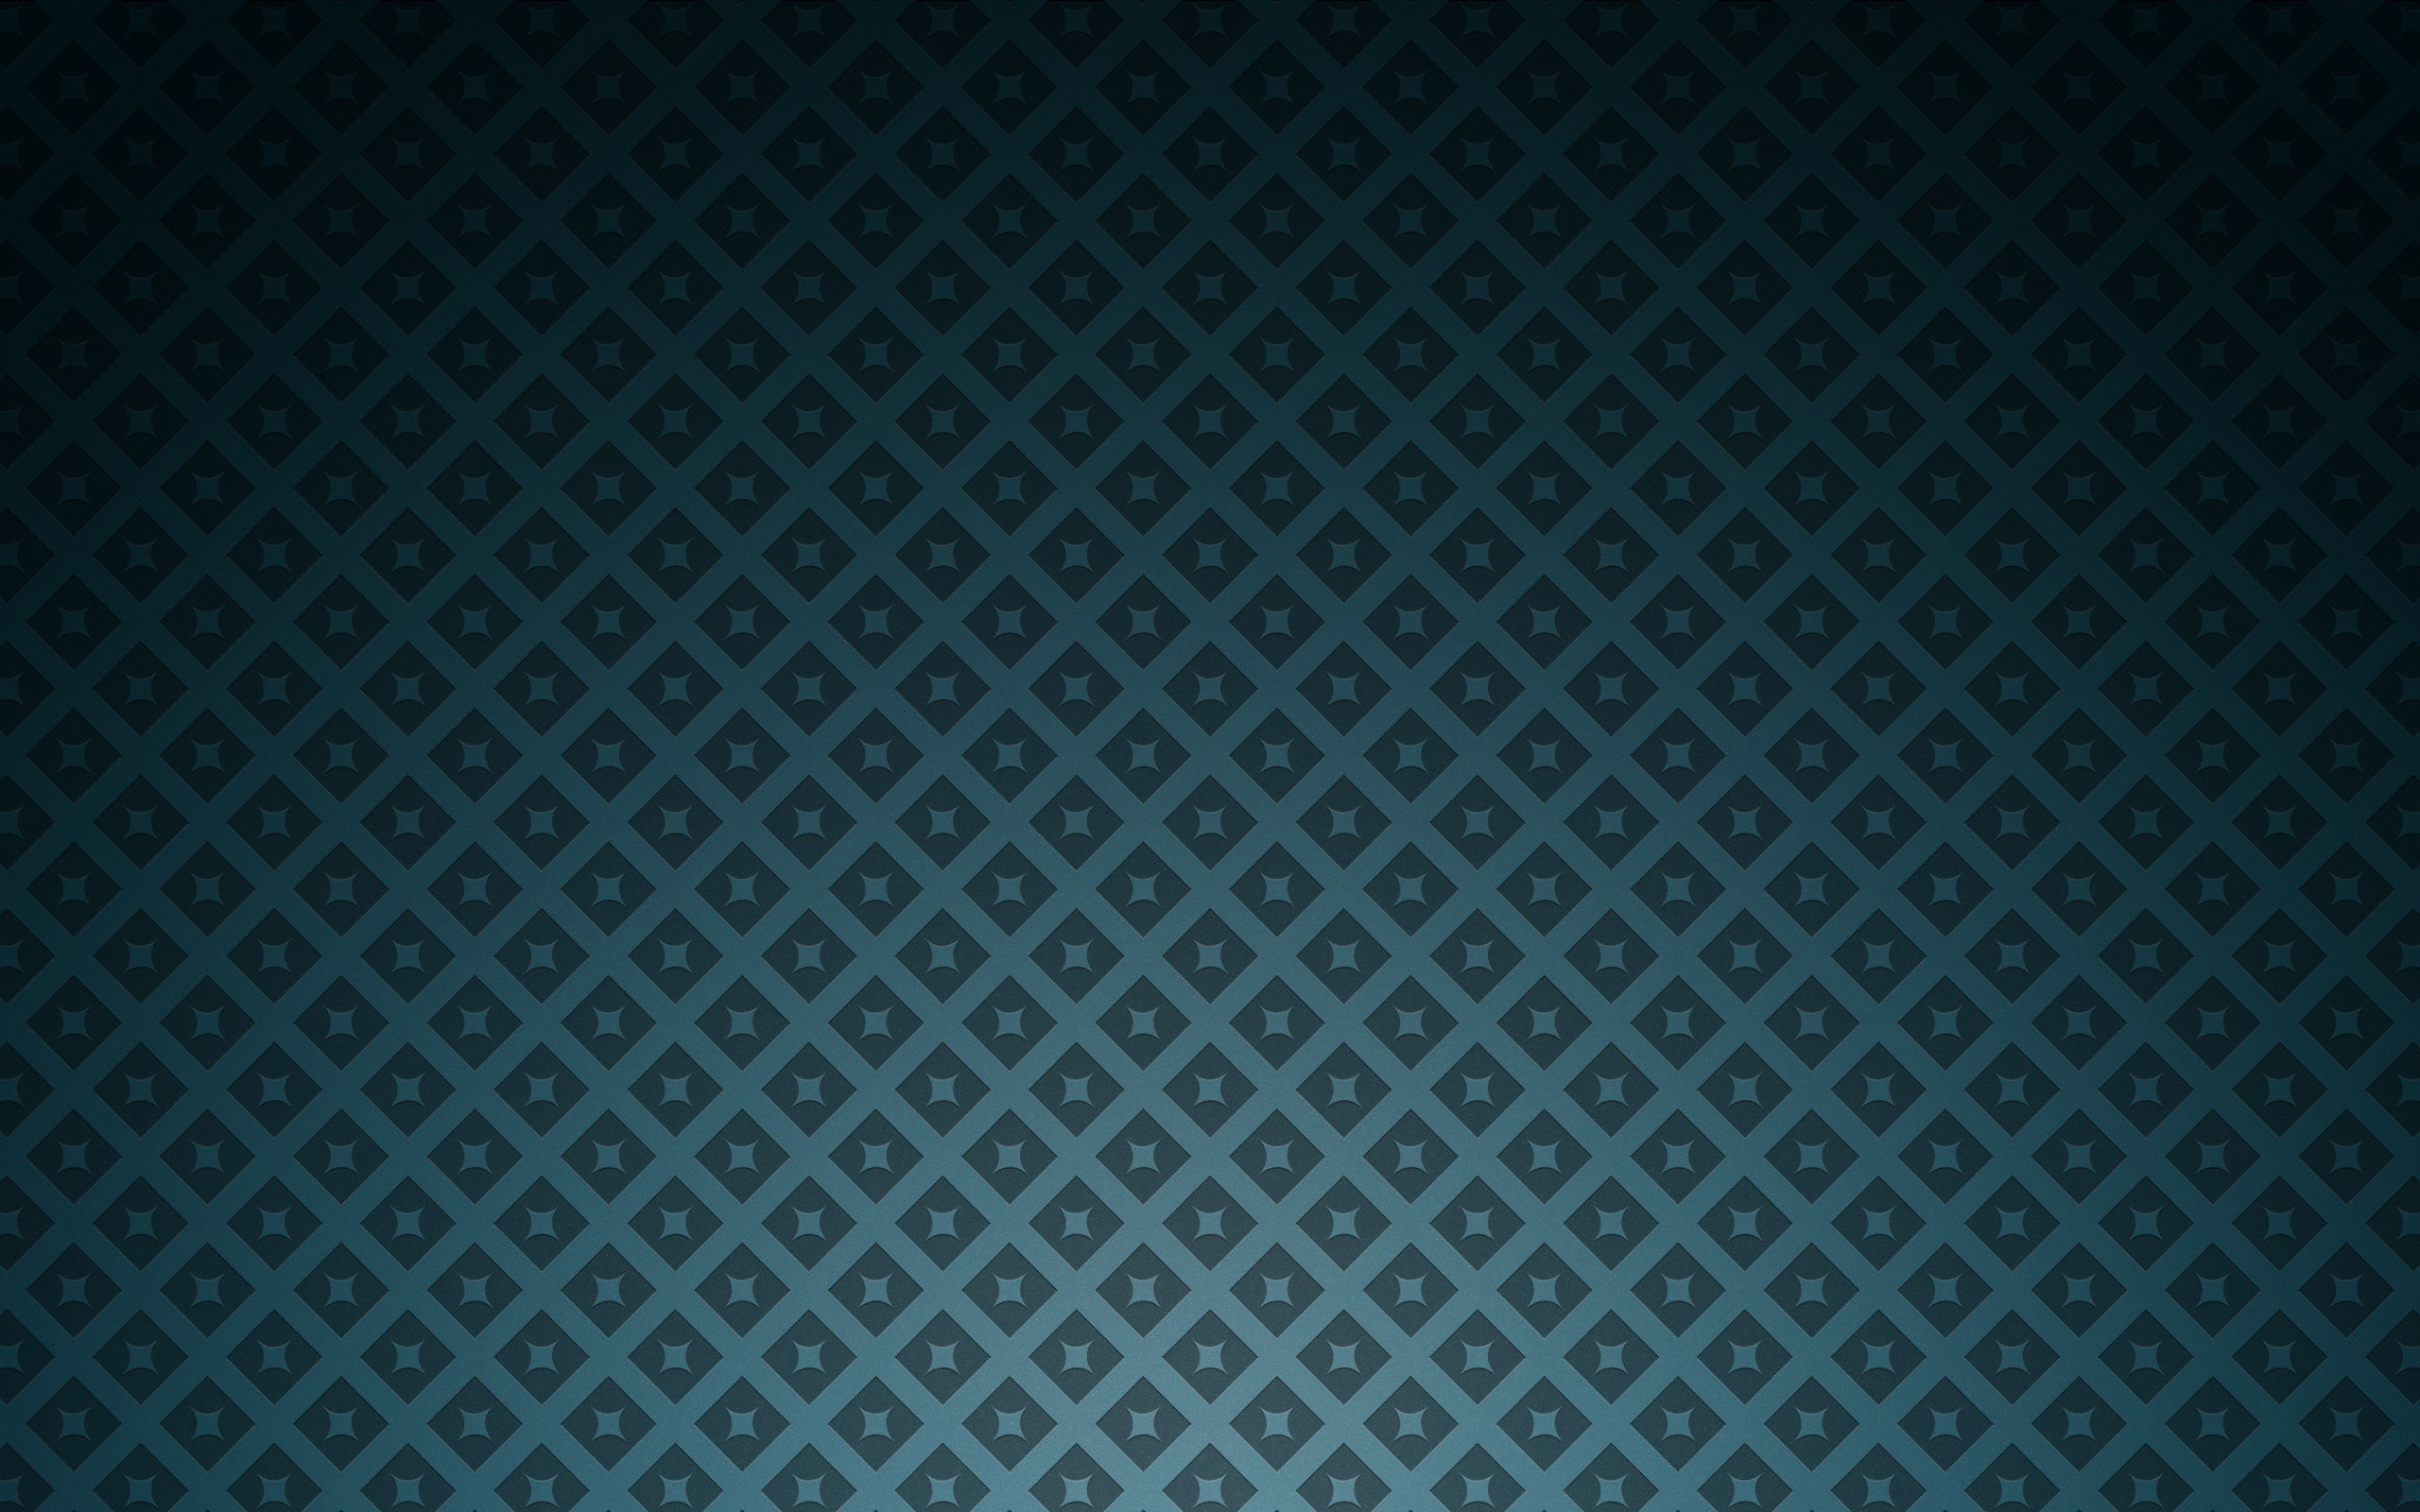 carbon wallpaper hd iphone